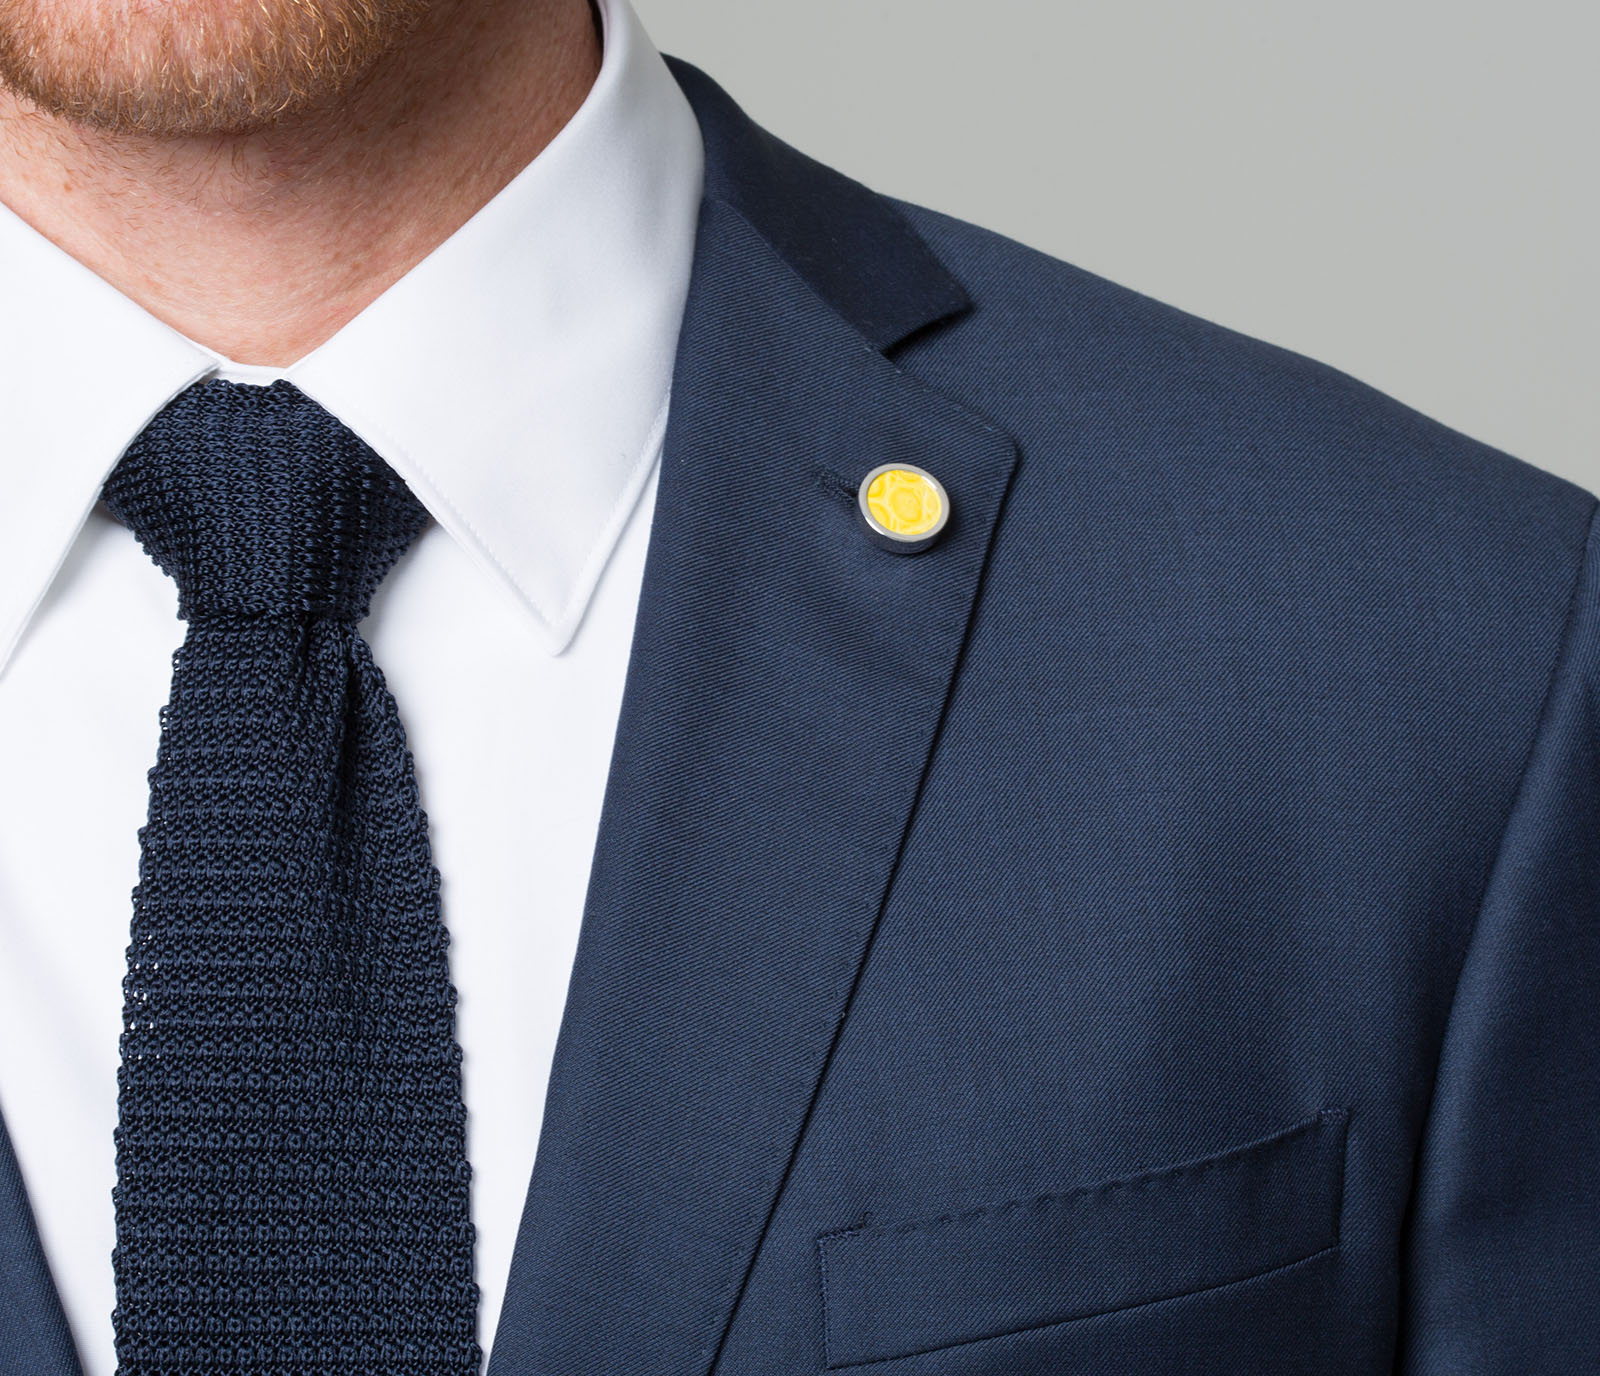 wear collar pin cotton sky men a blue and brooch shirt from crisp comprised s the for slim cool suit pure belfort